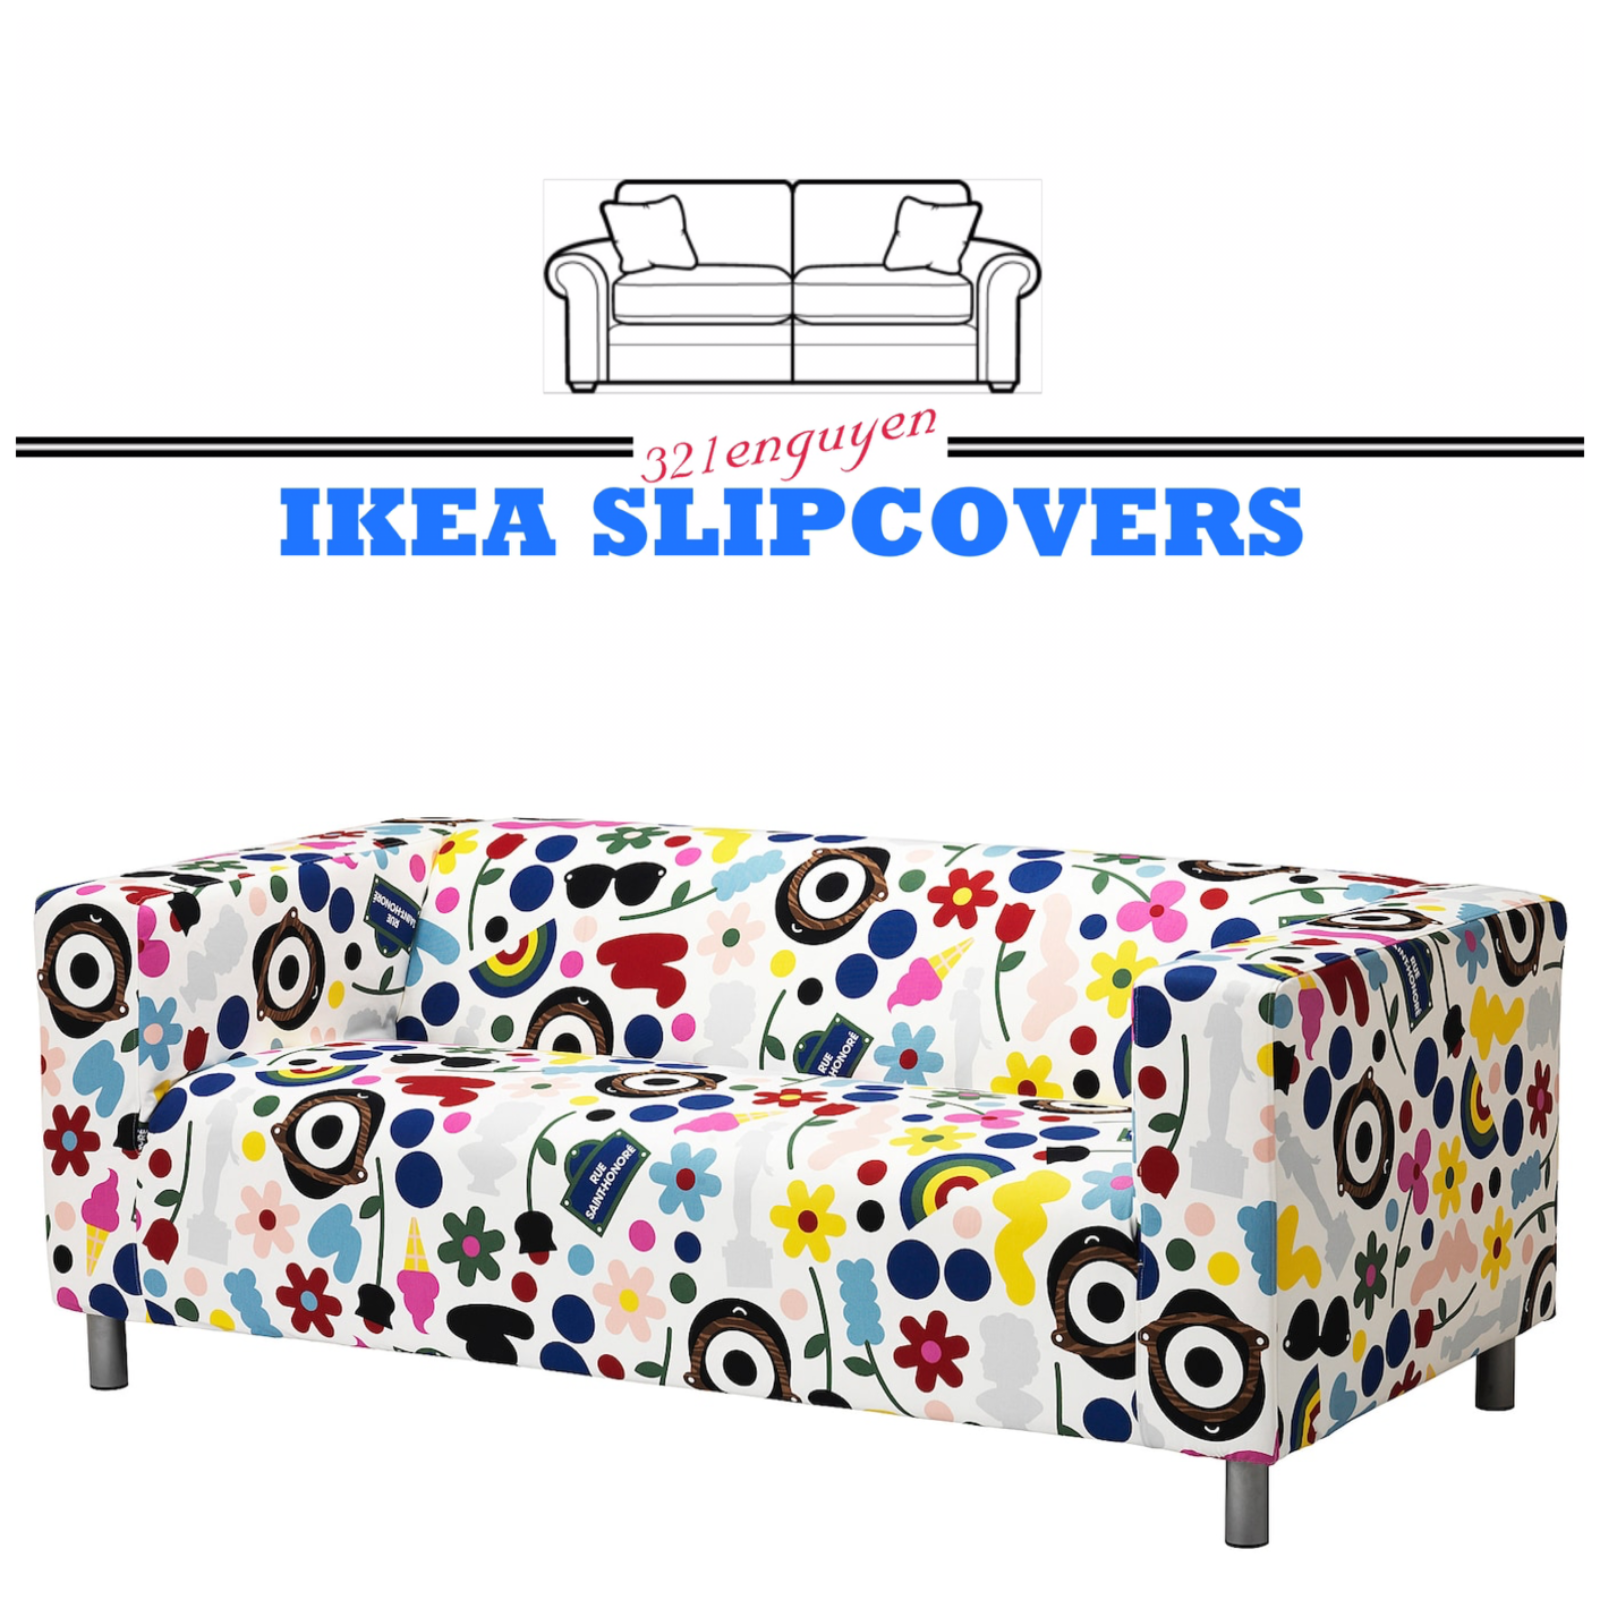 Stupendous Ikea Klippan Slipcover Fornyad Multicolored Loveseat Cover Removable 804 261 41 Ibusinesslaw Wood Chair Design Ideas Ibusinesslaworg